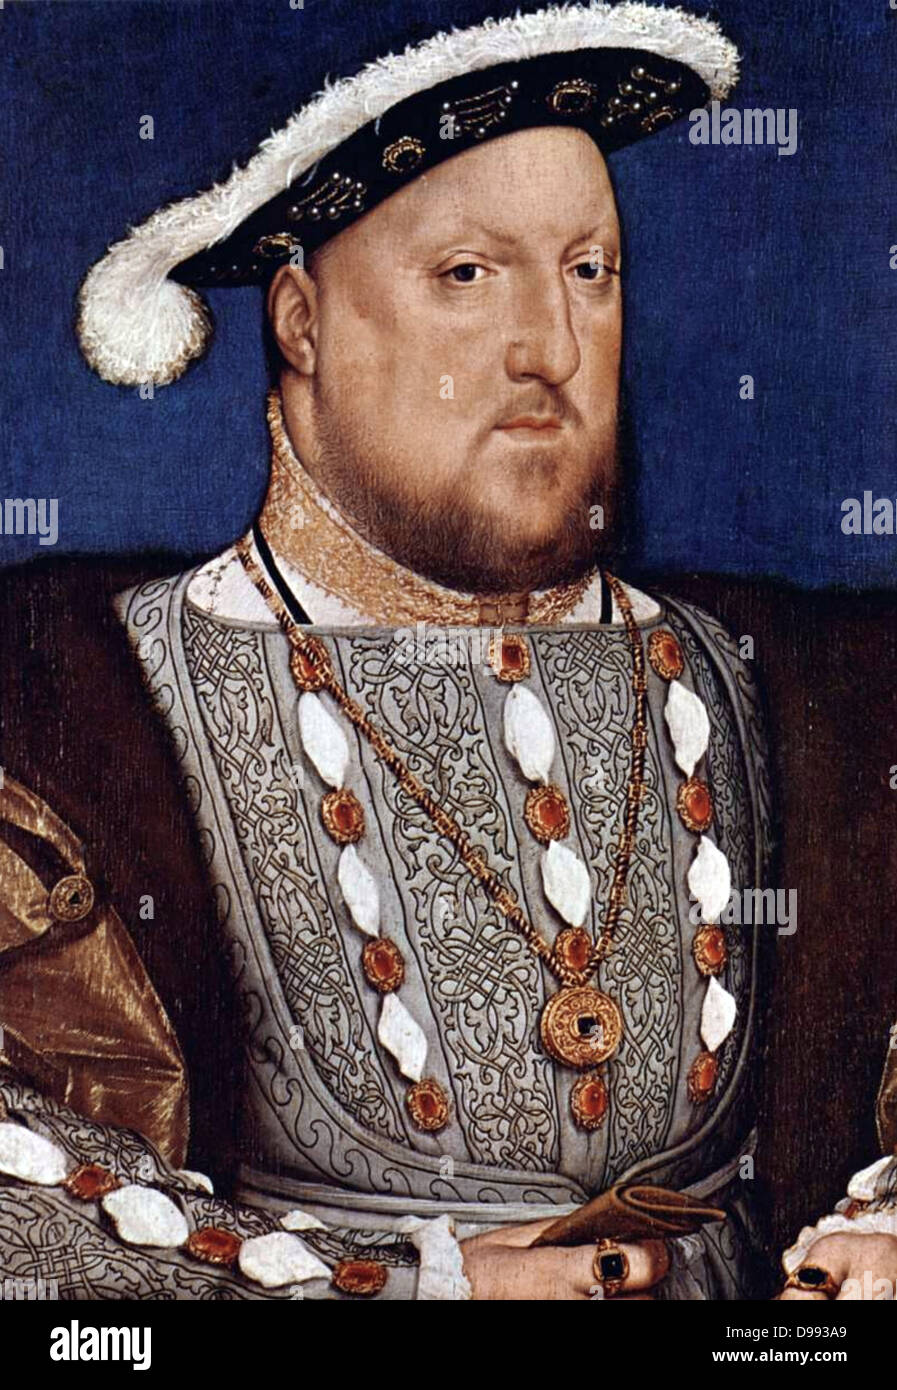 Portrait of Henry VIII. By Hans Holbein Date c. 1536/37. Henry VIII (28 June 1491 – 28 January 1547) was King of - Stock Image